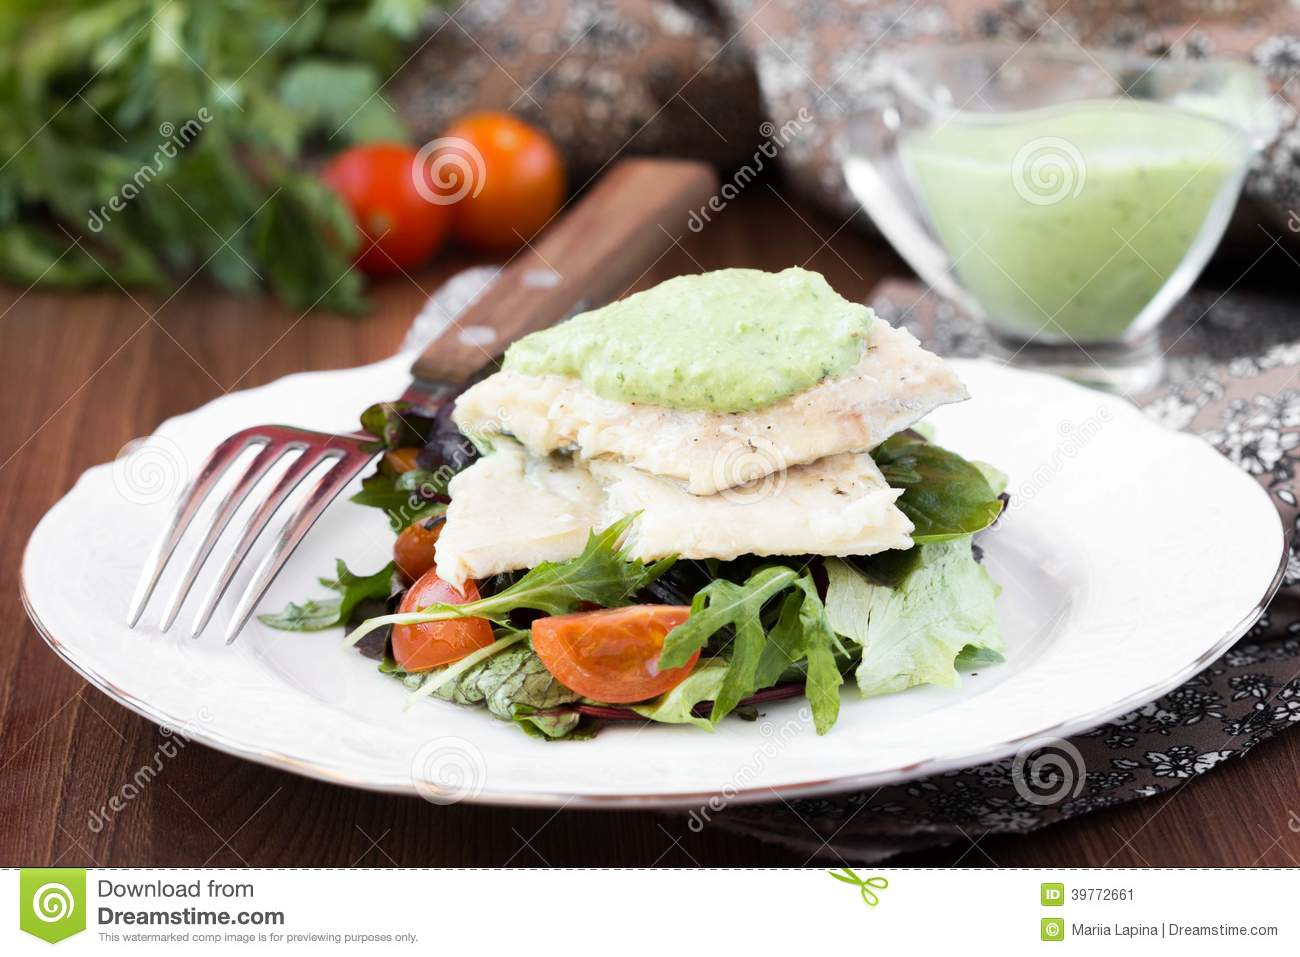 how to make white sauce for fish fillet